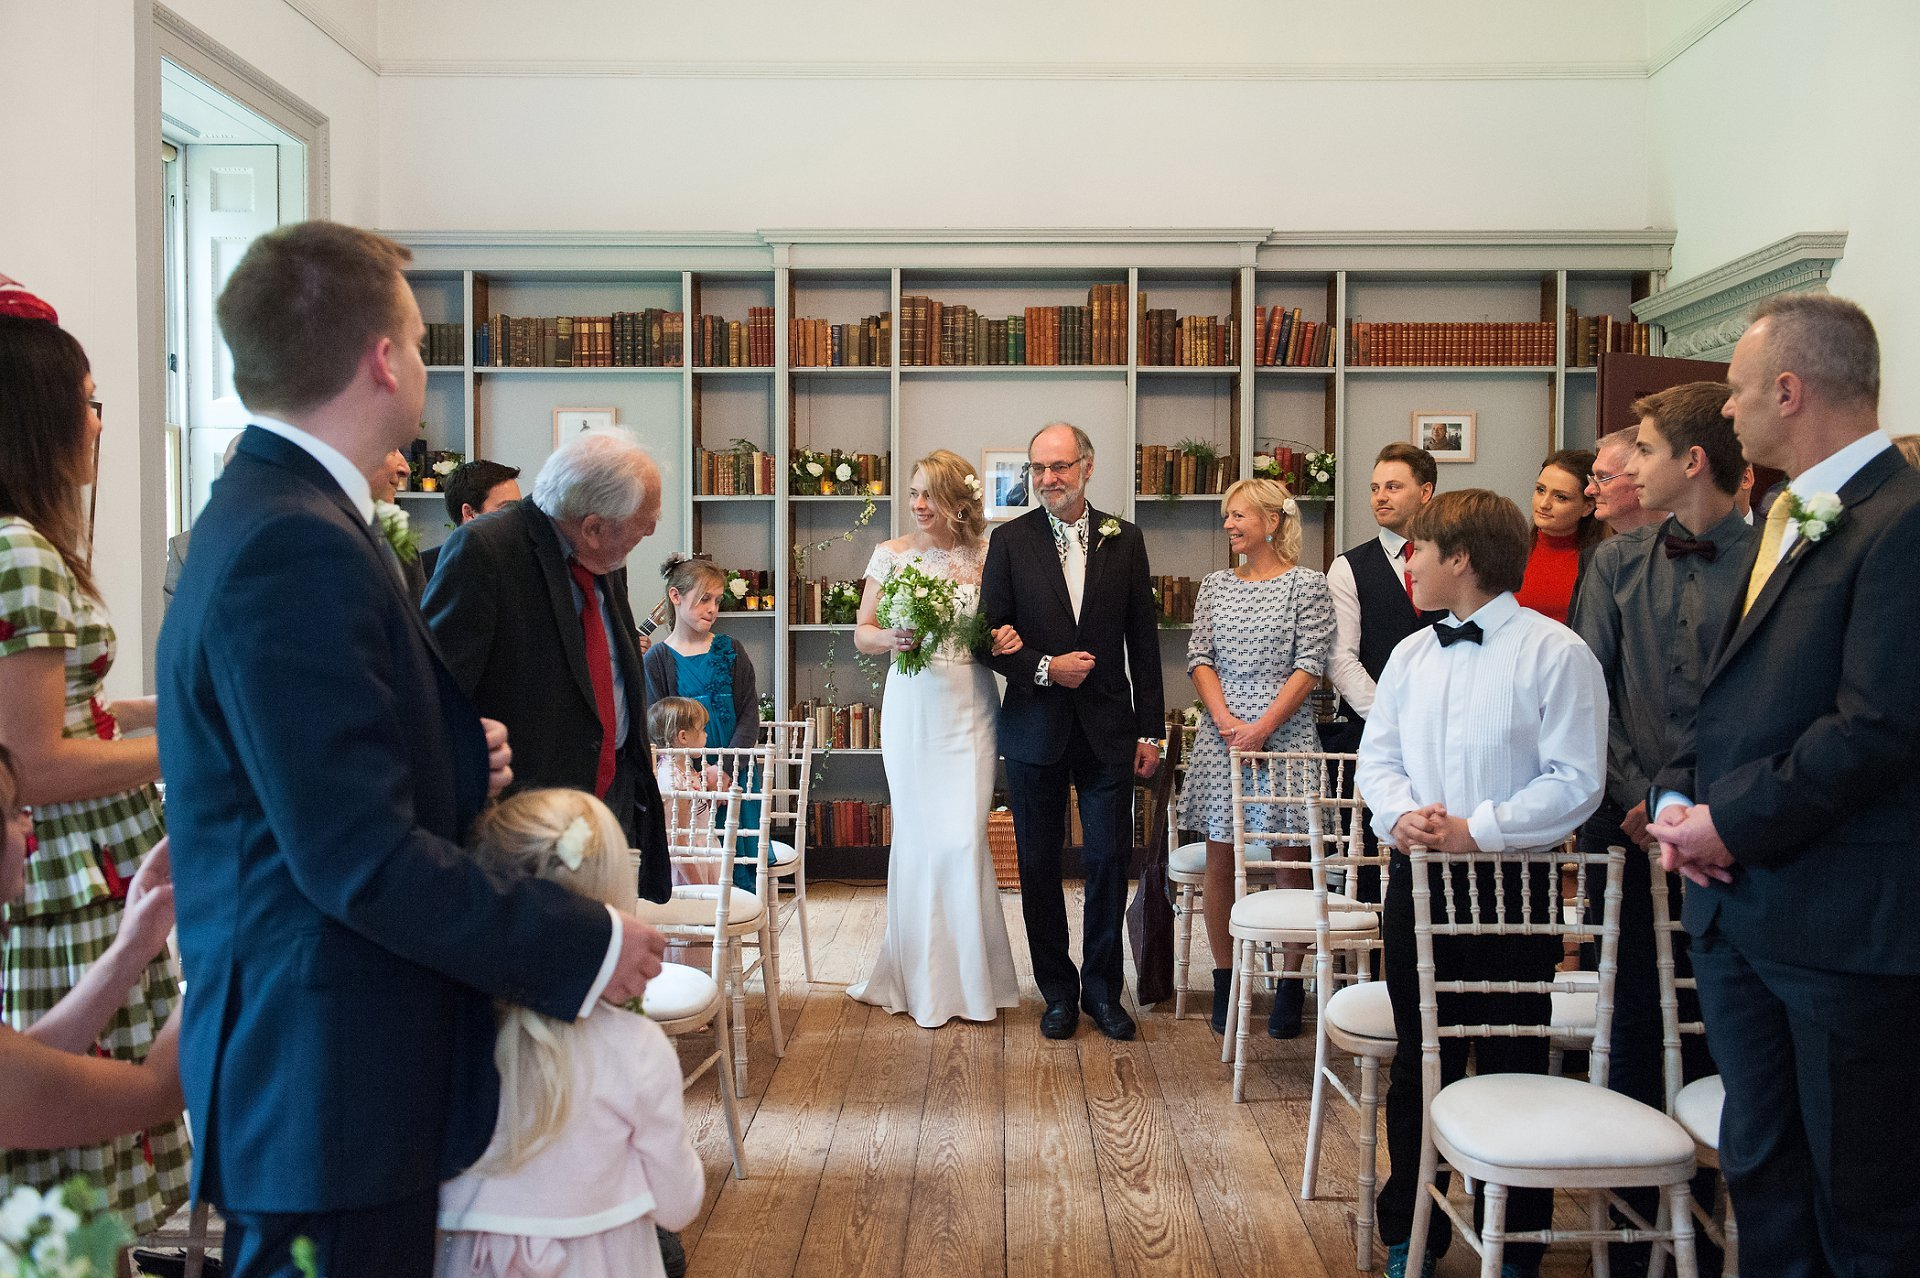 Bride & her father walk into Bishop Terrick's Drawing Room at Fulham Palace at the start of a civil marriage cermony